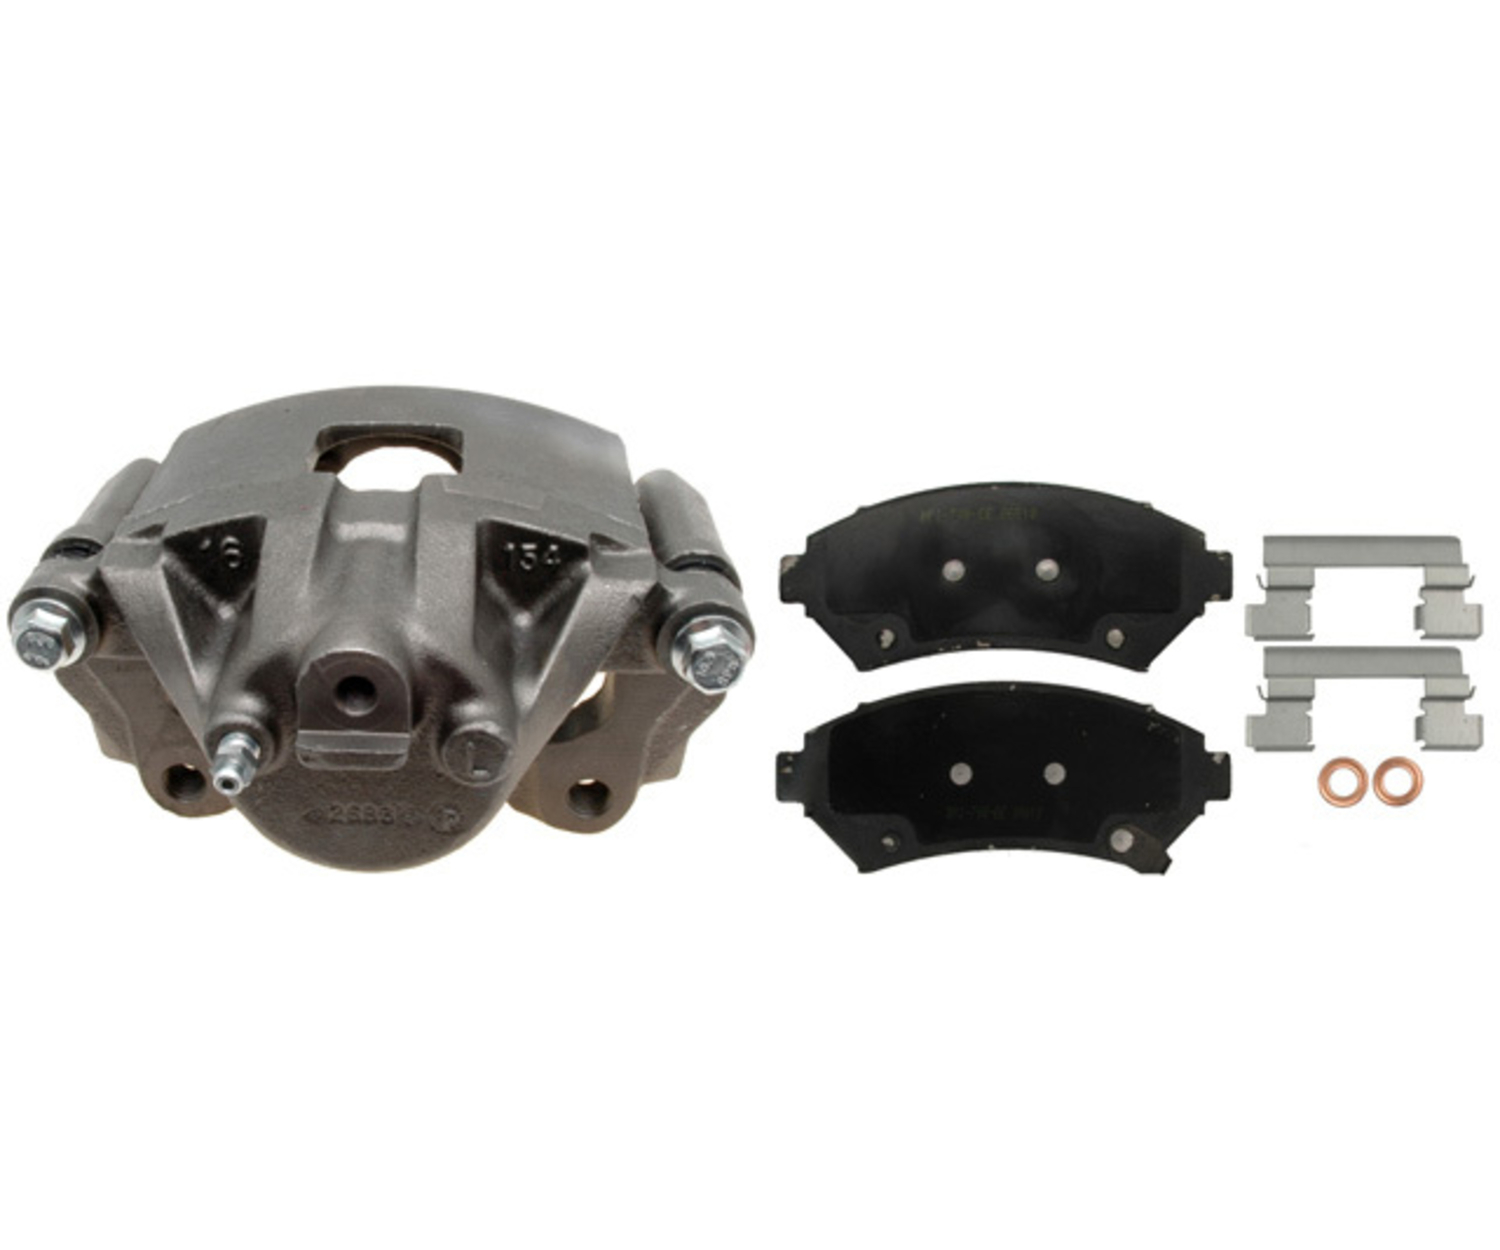 RAYBESTOS - R-Line; Loaded Caliper, Remanufactured; Includes Bracket - RAY RC10839